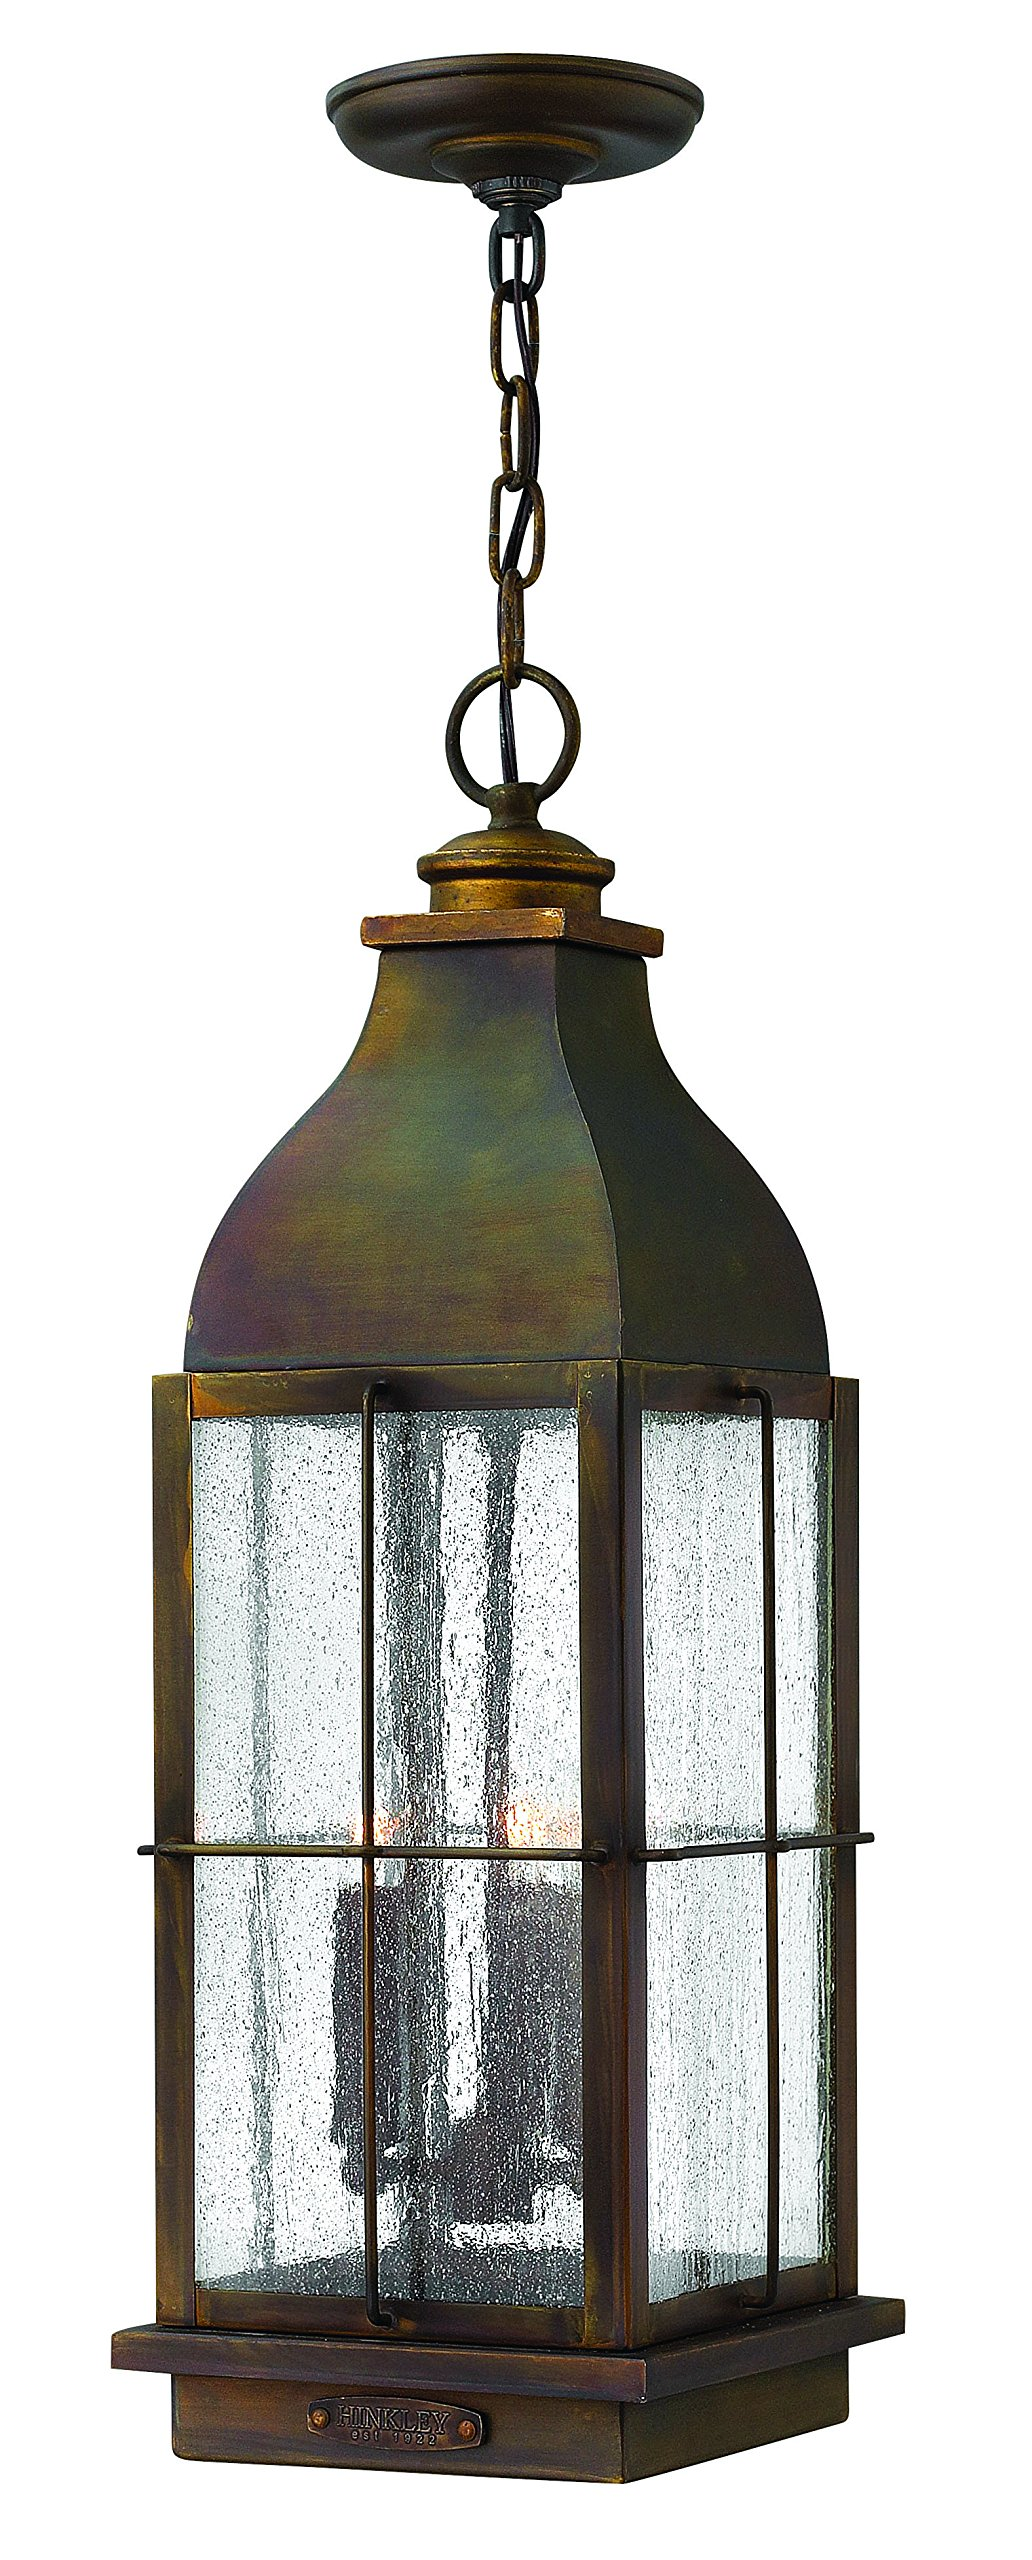 Hinkley 2042SN Restoration Three Light Hanging Lantern from Bingham collection in Bronze/Darkfinish, by Hinkley